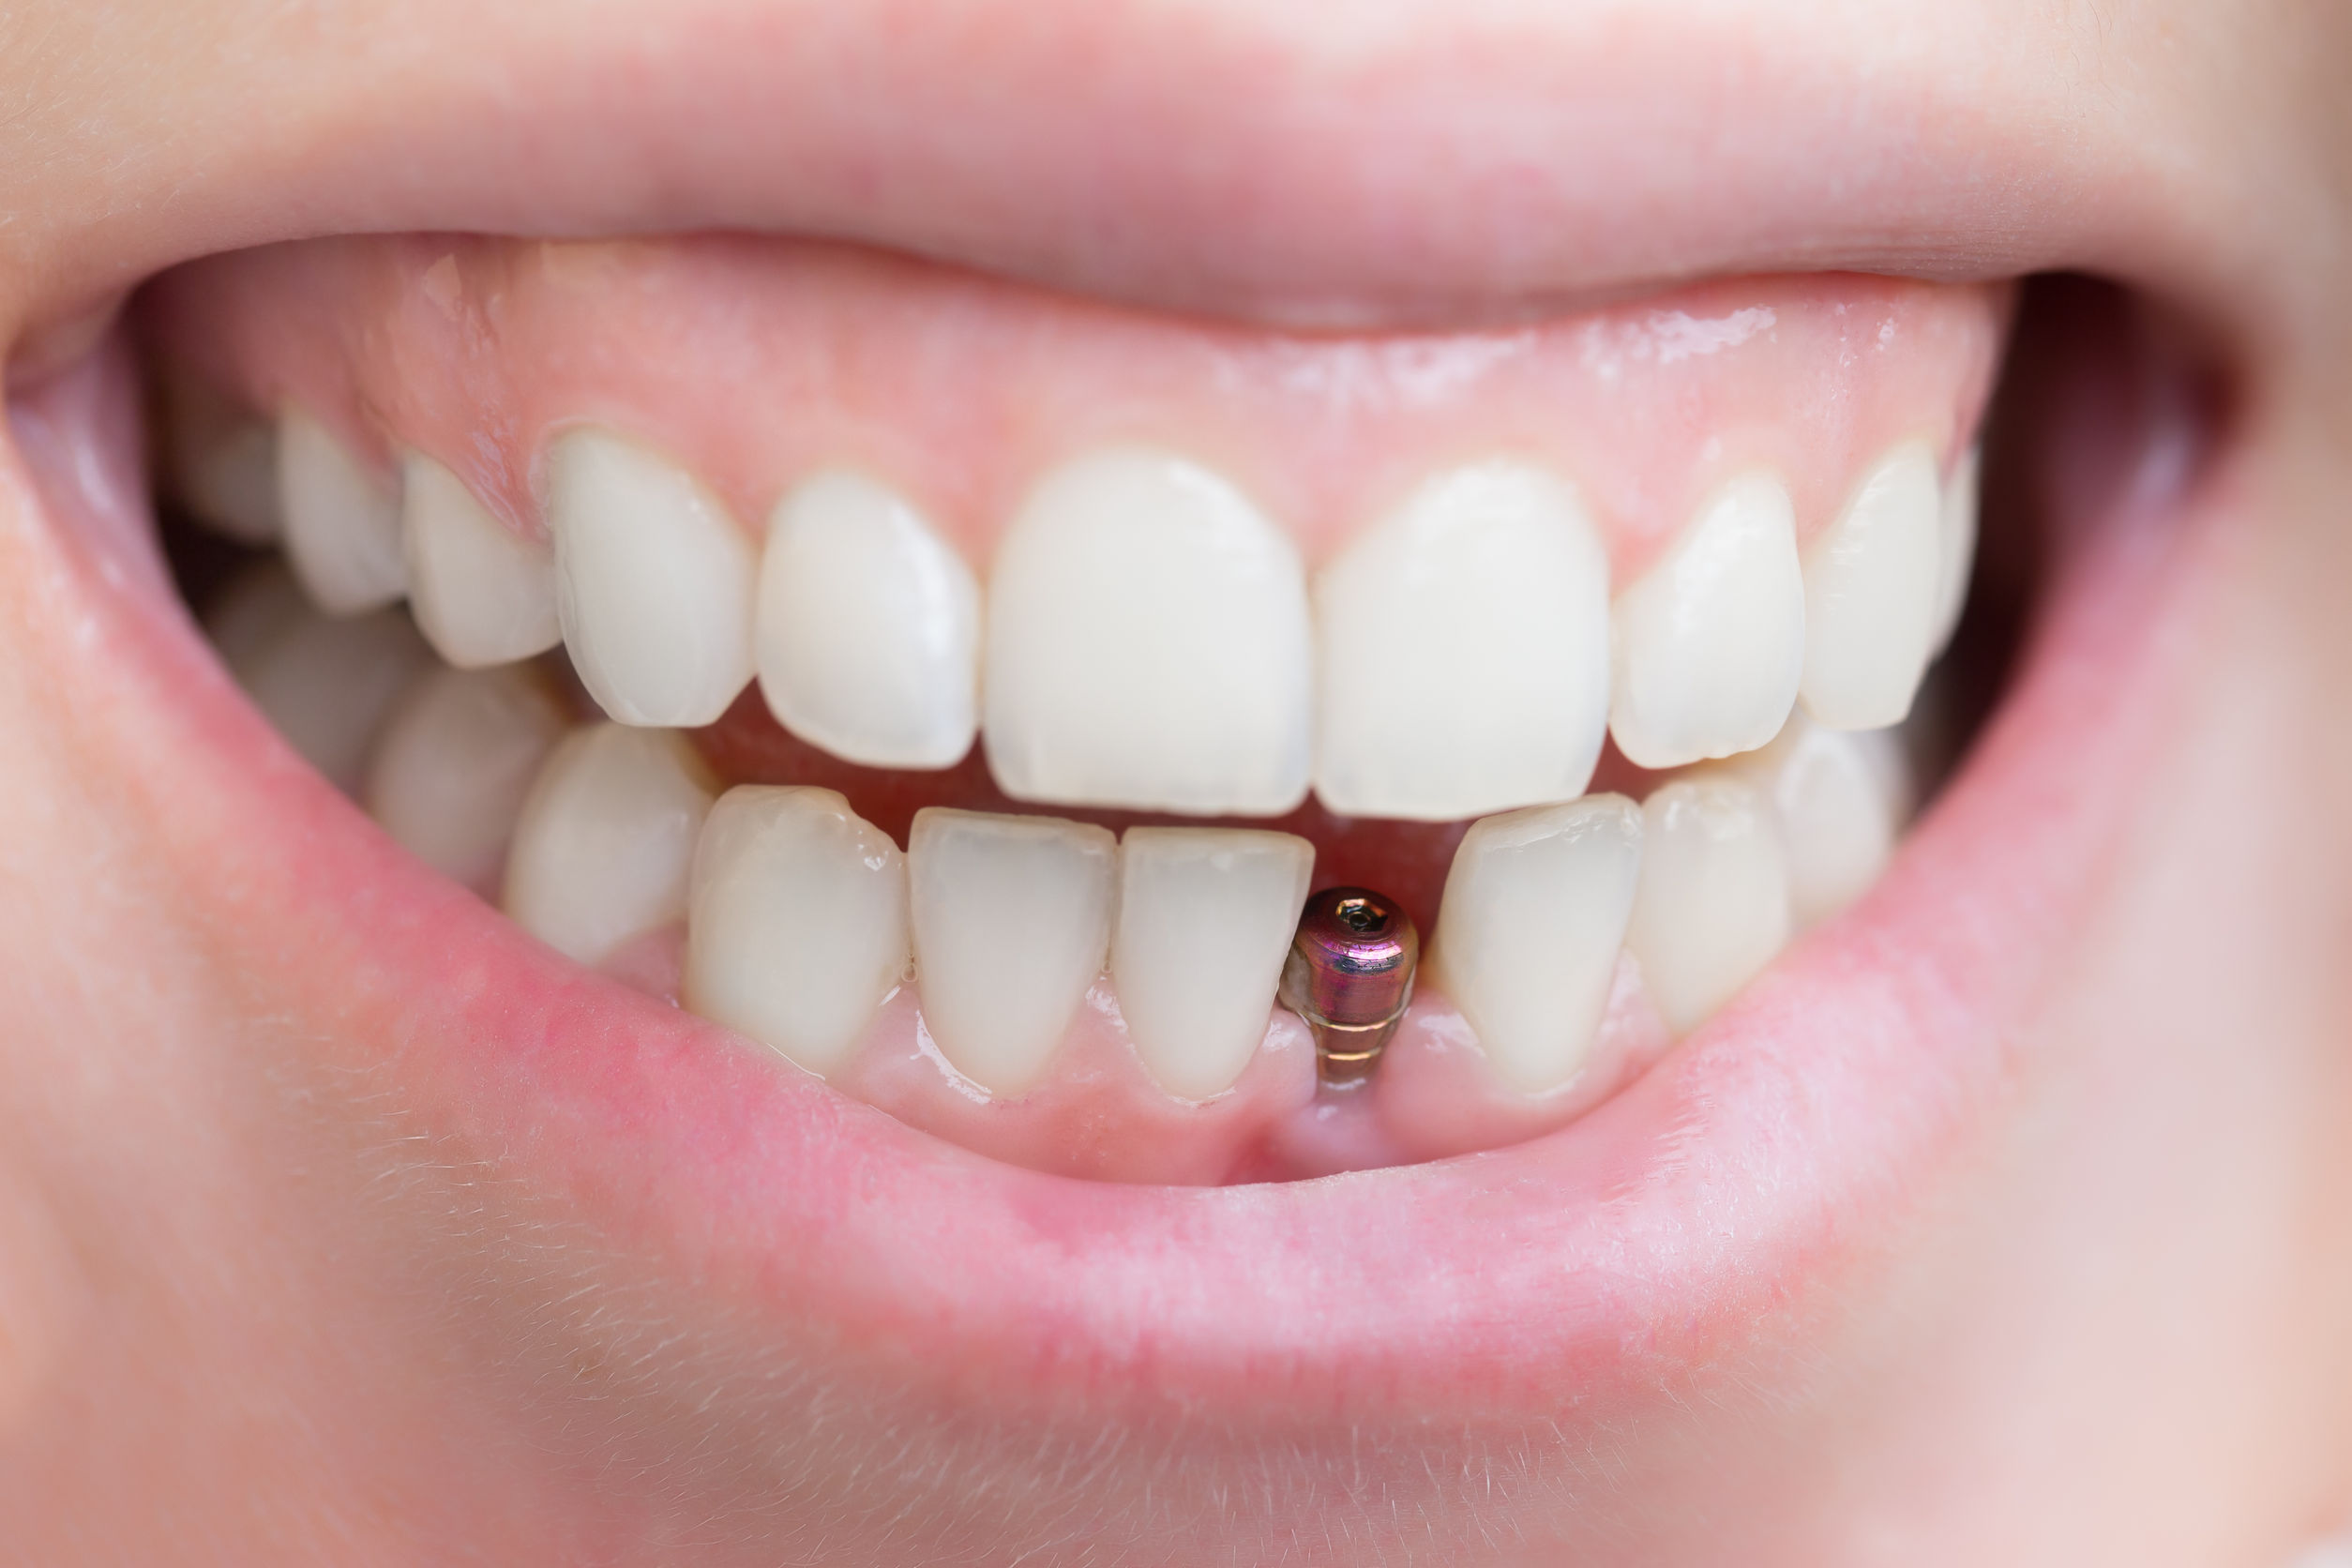 Where Can I Get 89119 Dental Implants?